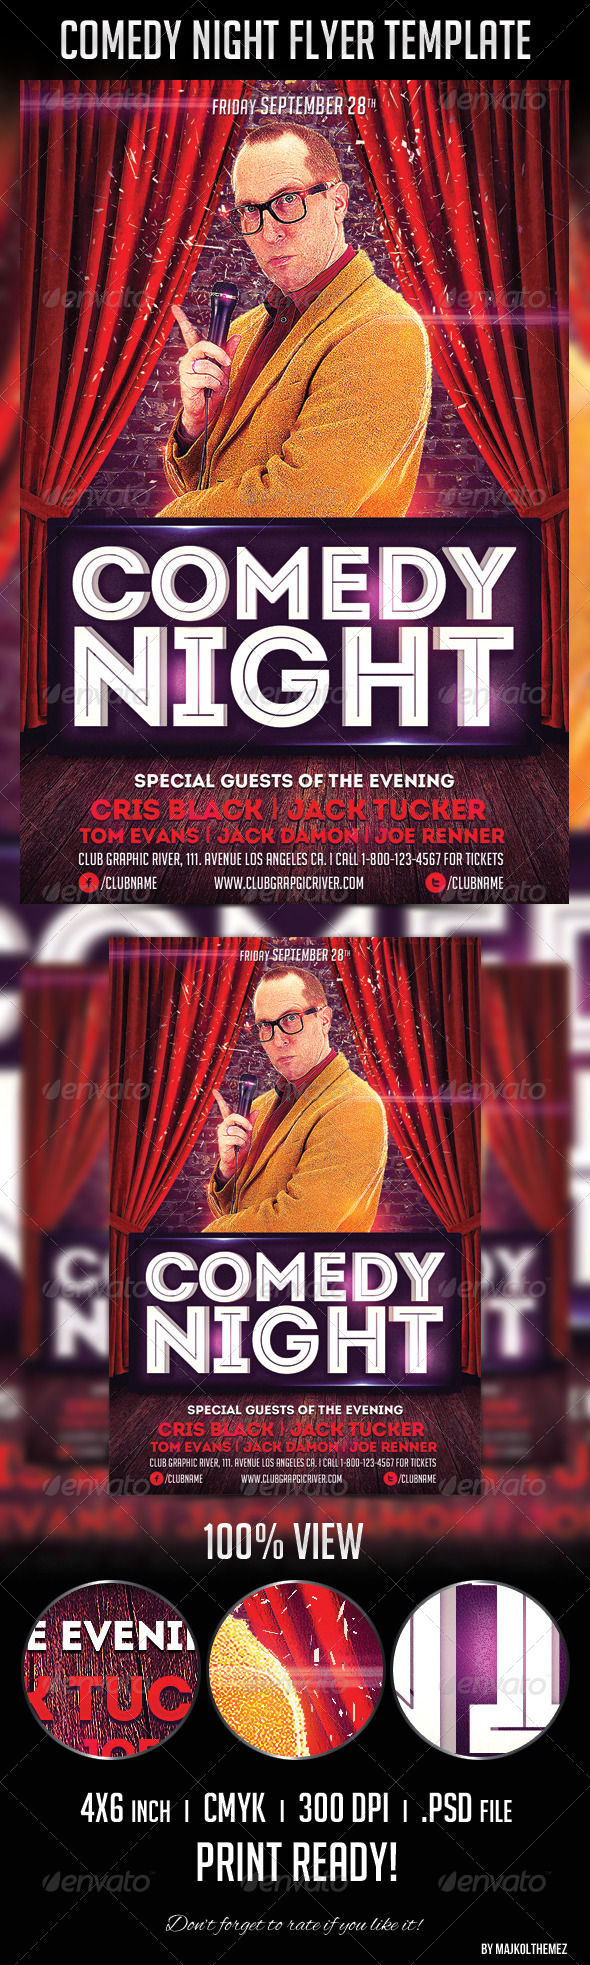 Comedy Night Flyer Template - Print Templates